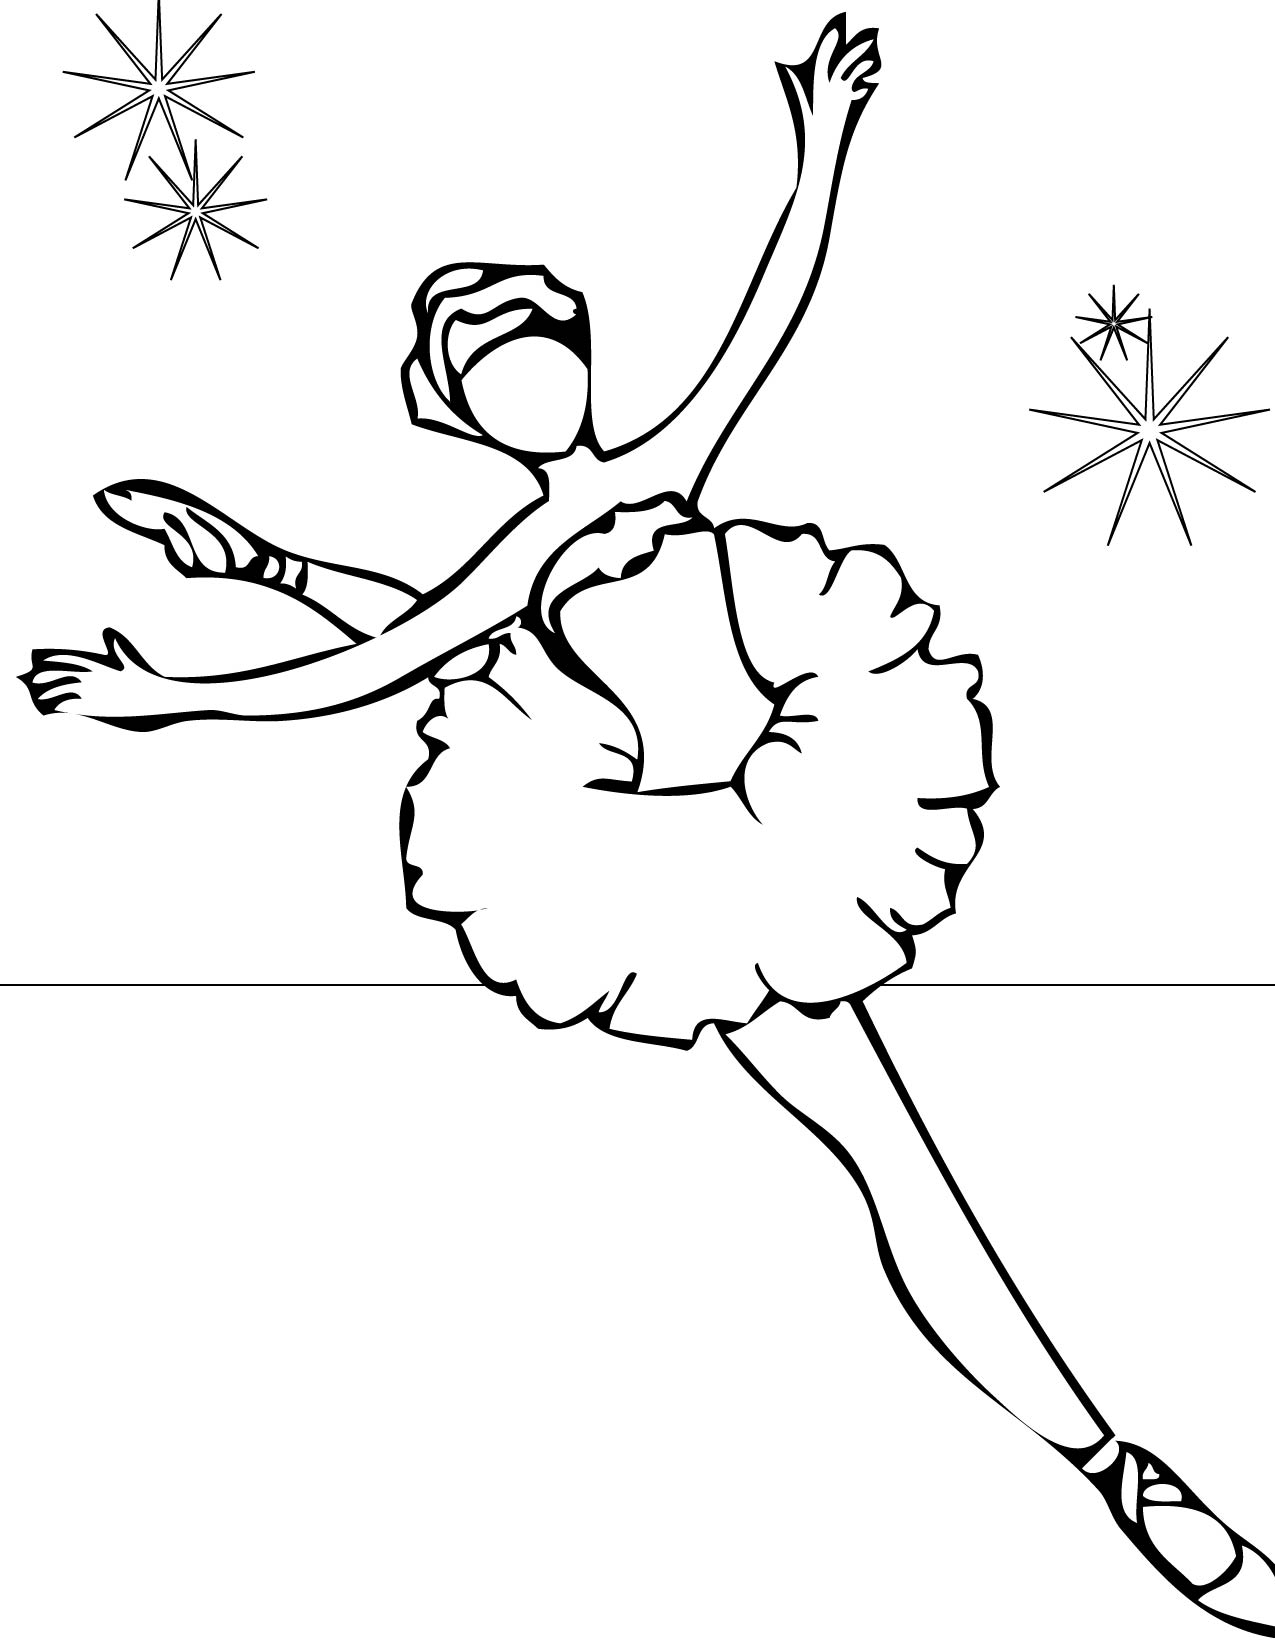 Drawn ballerine coloring page For Pages Free Kids Coloring